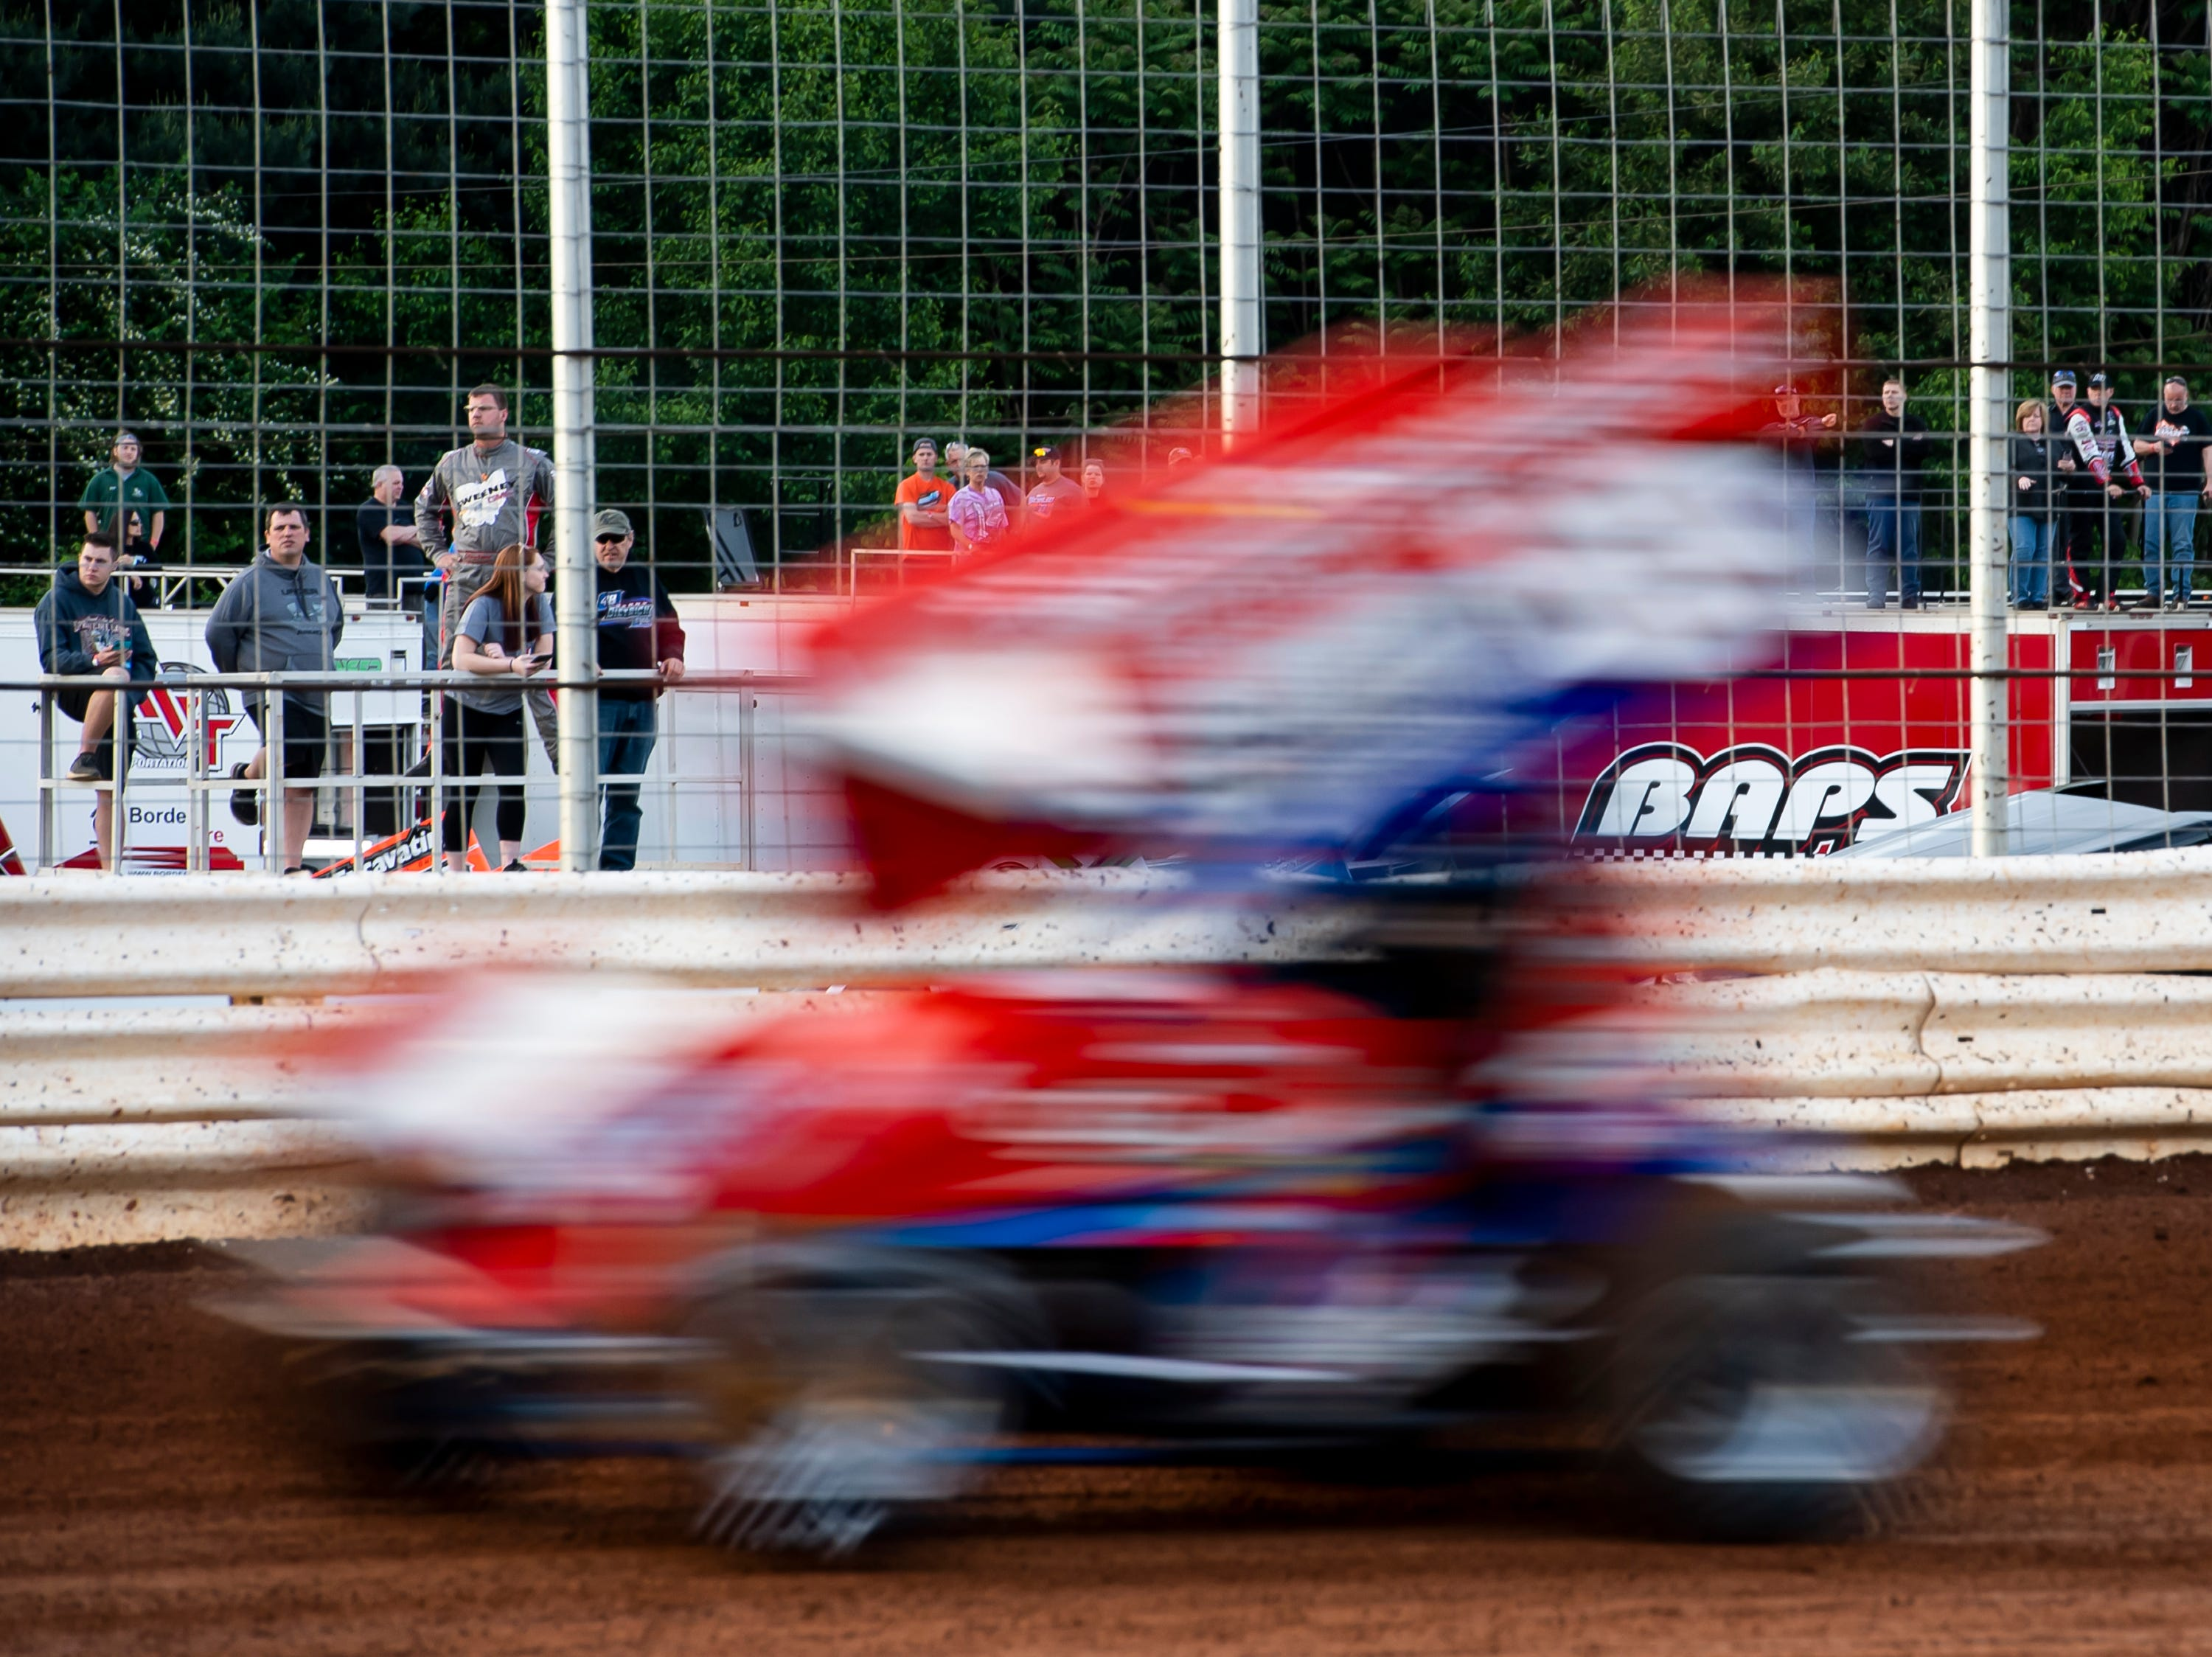 People watch as a car speeds past in the time trials during the World of Outlaws Gettysburg Clash at Lincoln Speedway in Abbottstown on Wednesday, May 15, 2019.